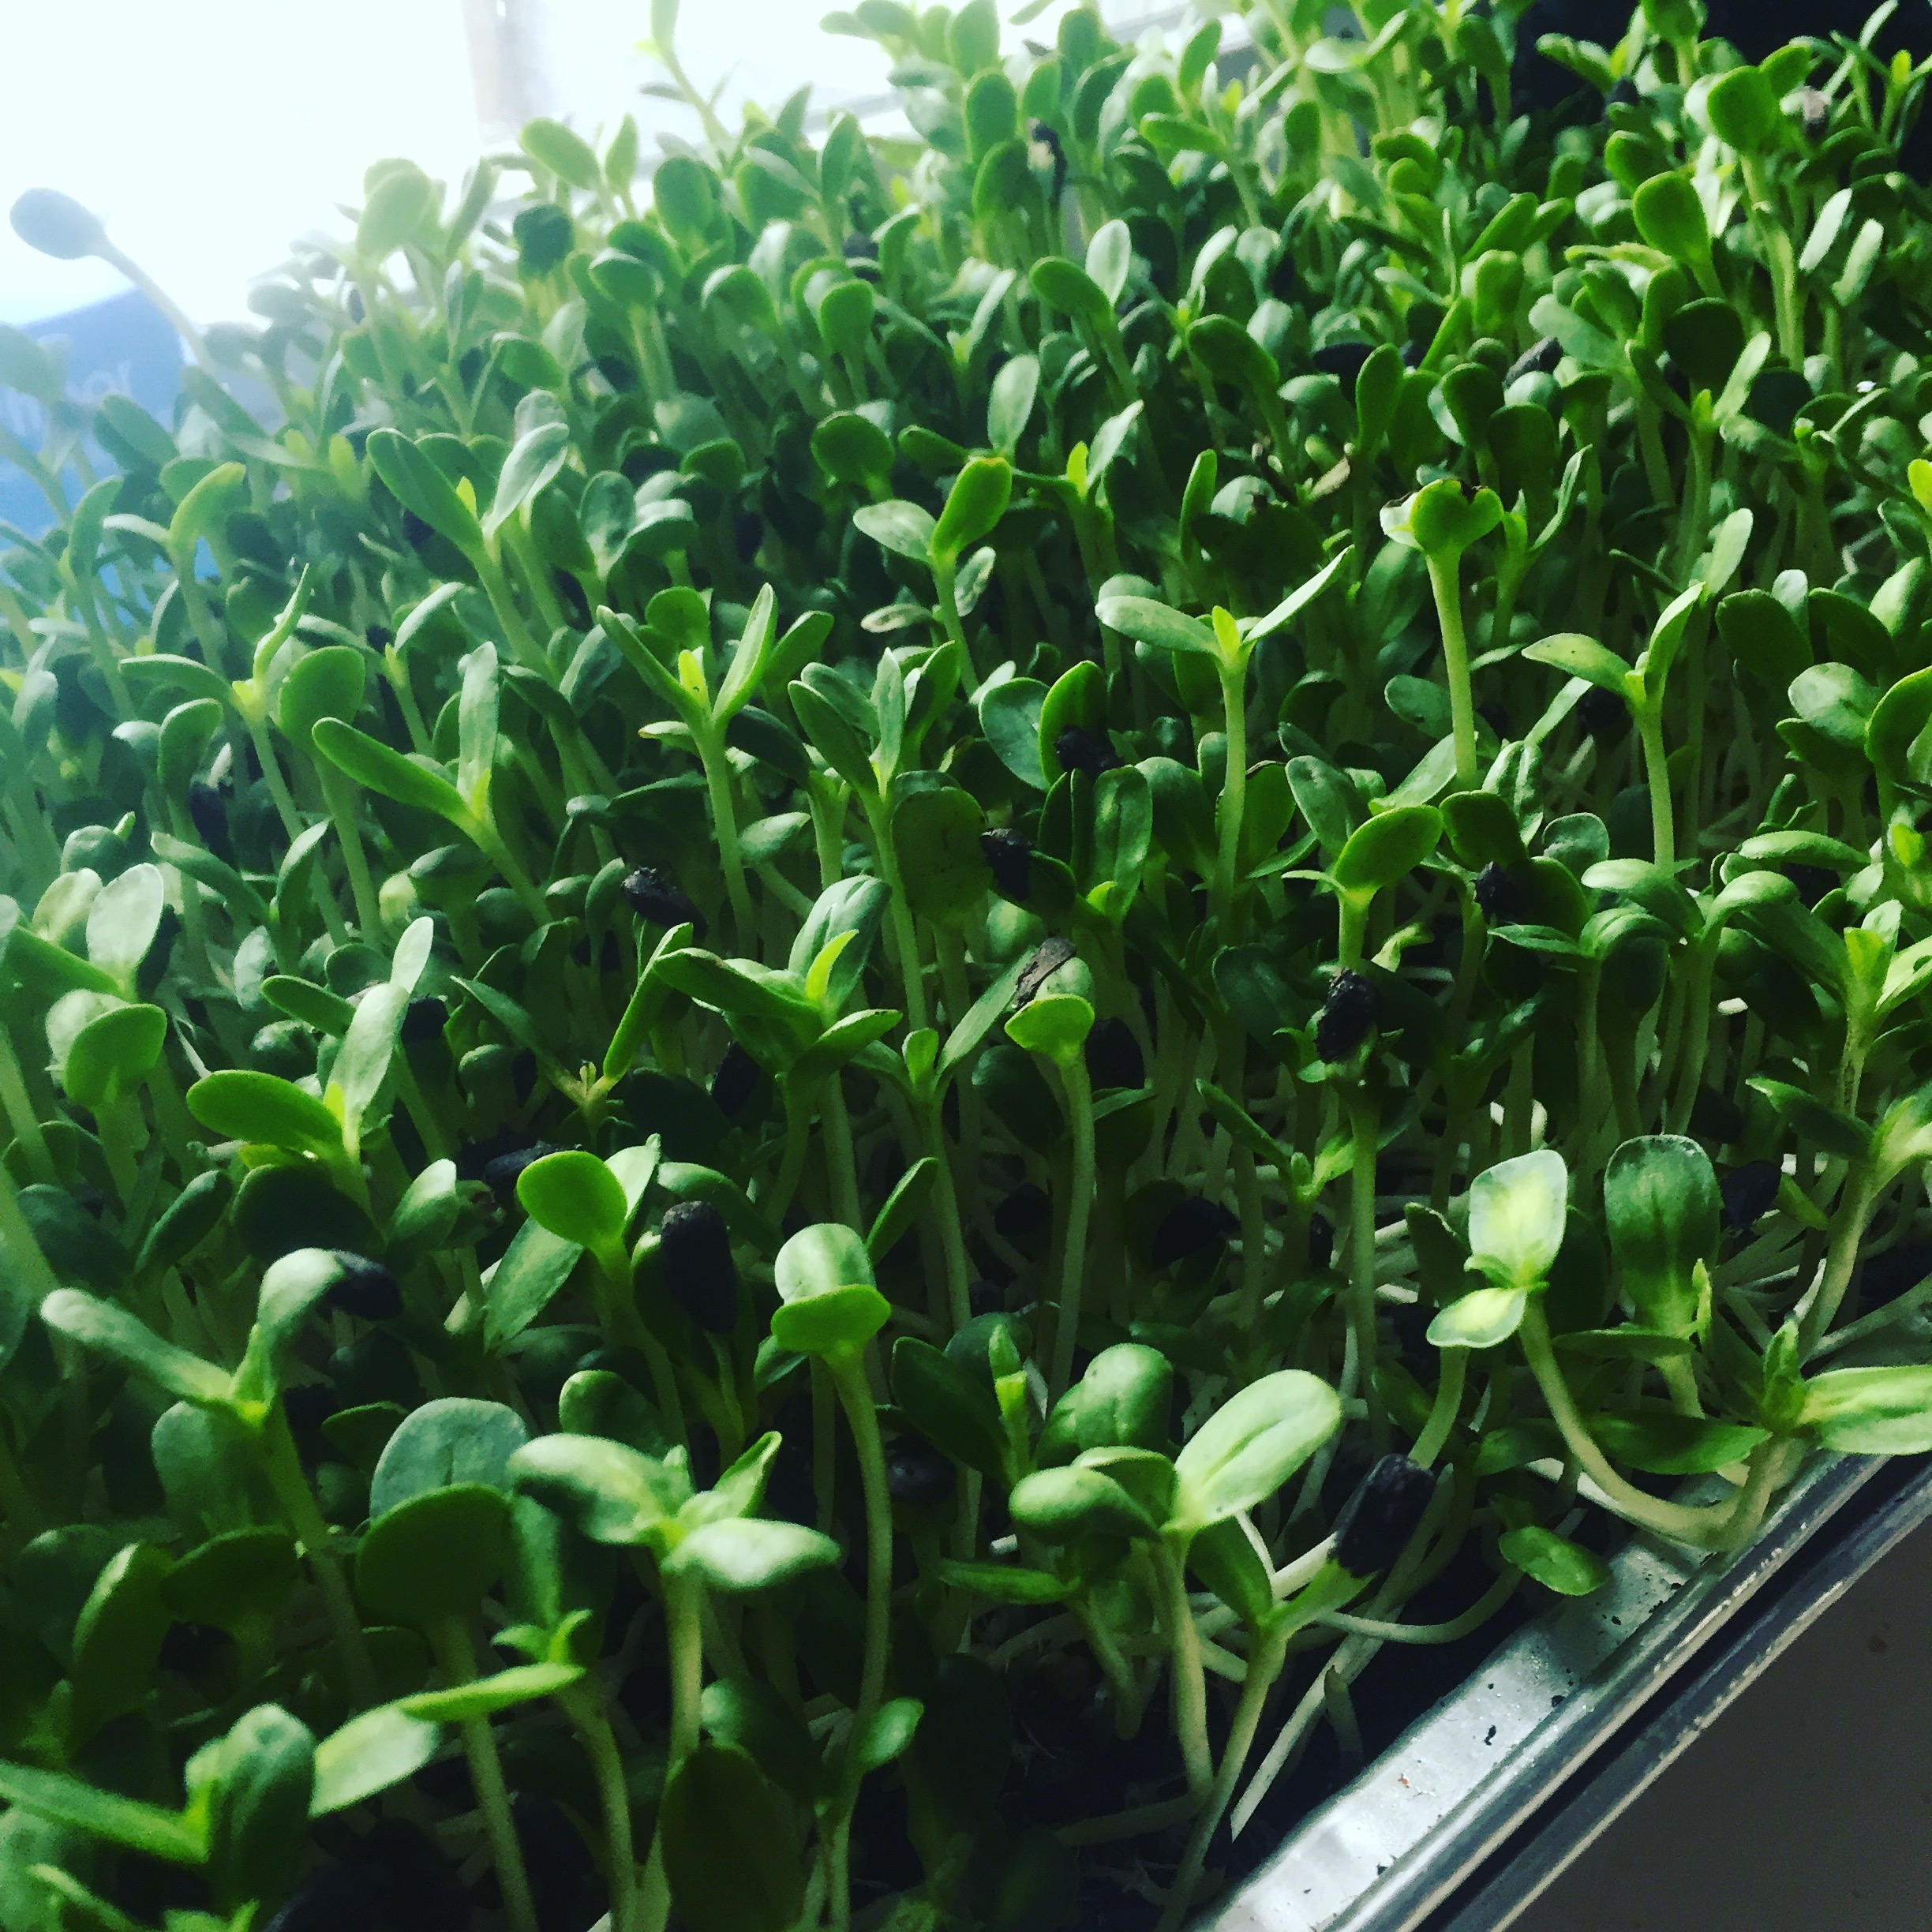 Sunflower Microgreens grown